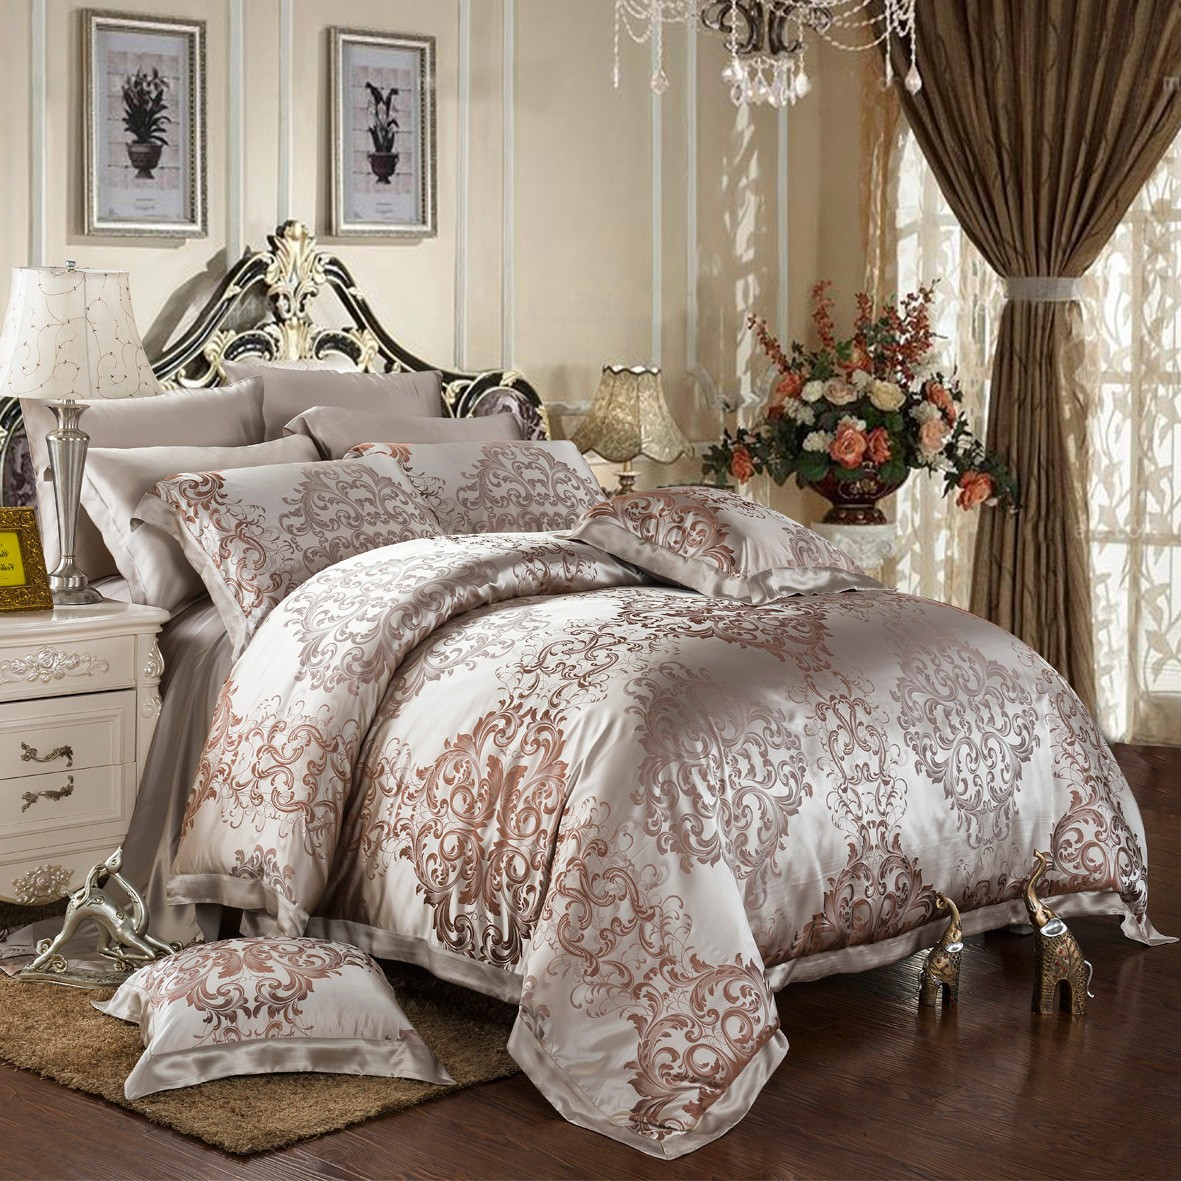 Luxury Comforter Sets | Colorful Bedspreads | Cheap Queen Comforter Sets